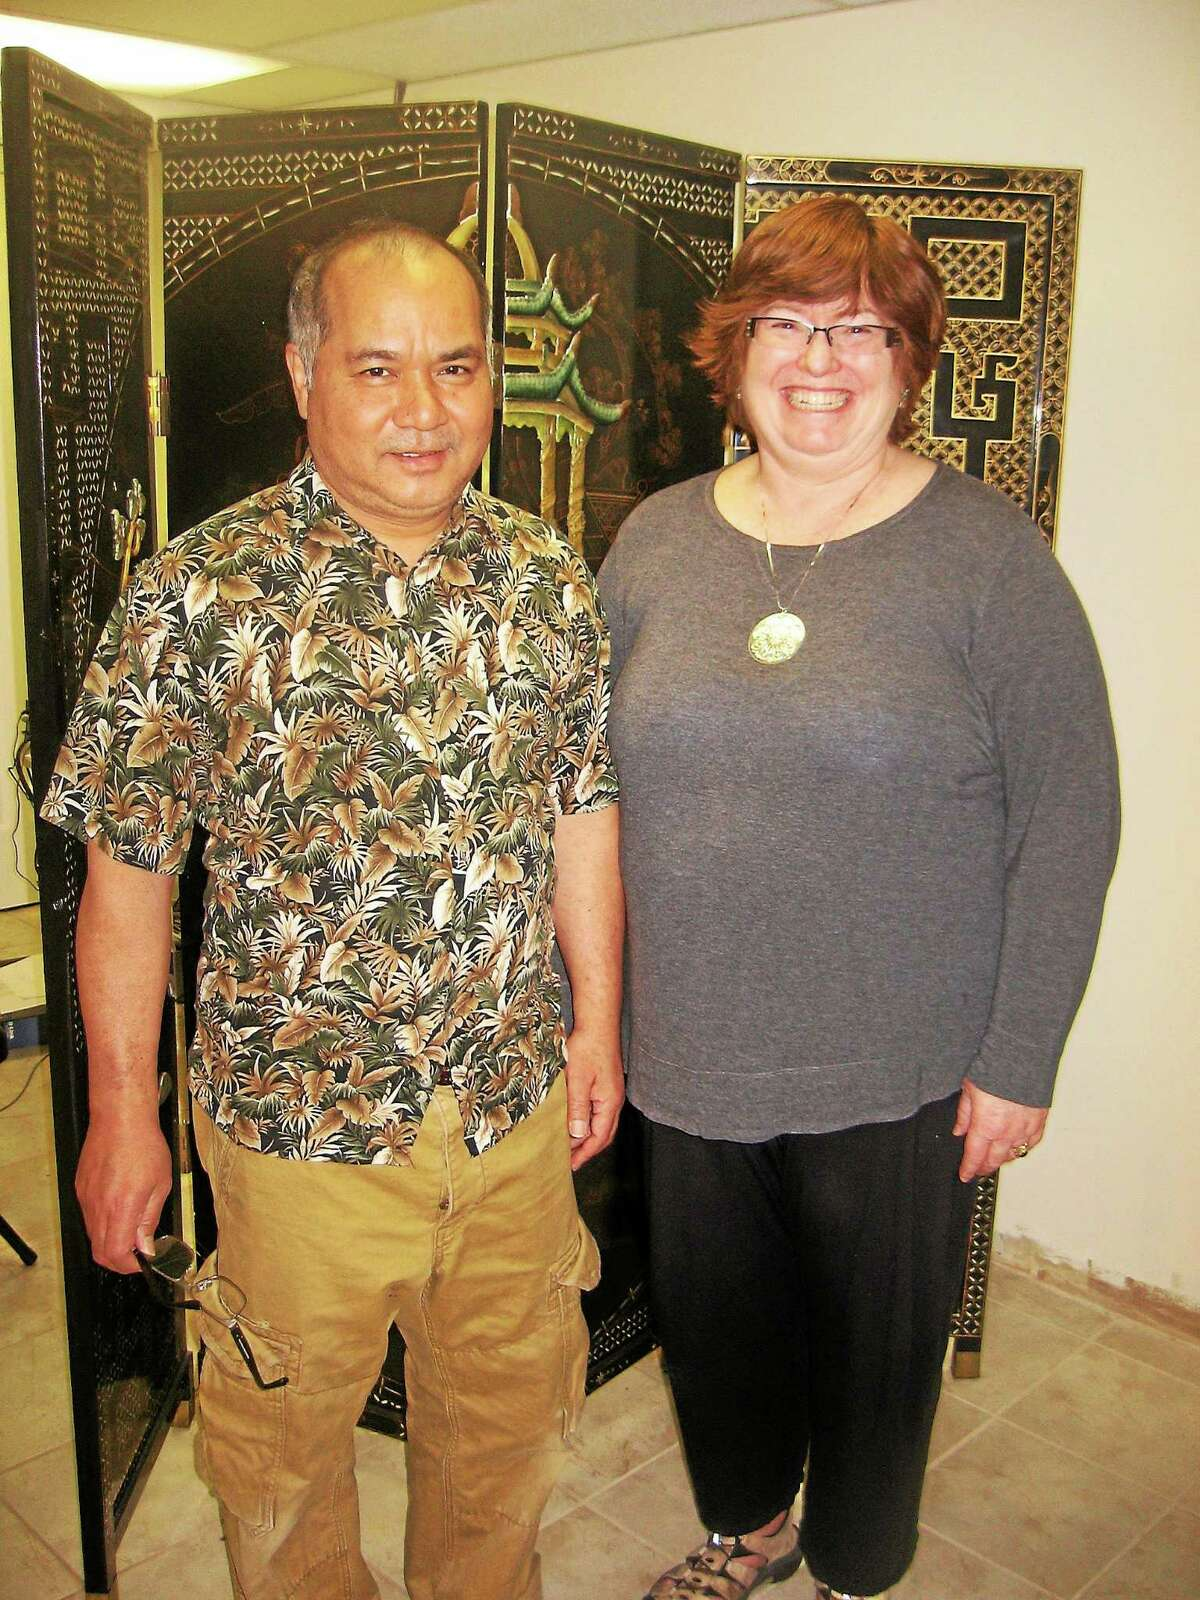 Owners of Edo Sushi Express in Watertown, Thihan Tujn and Cynthia LaBelle.